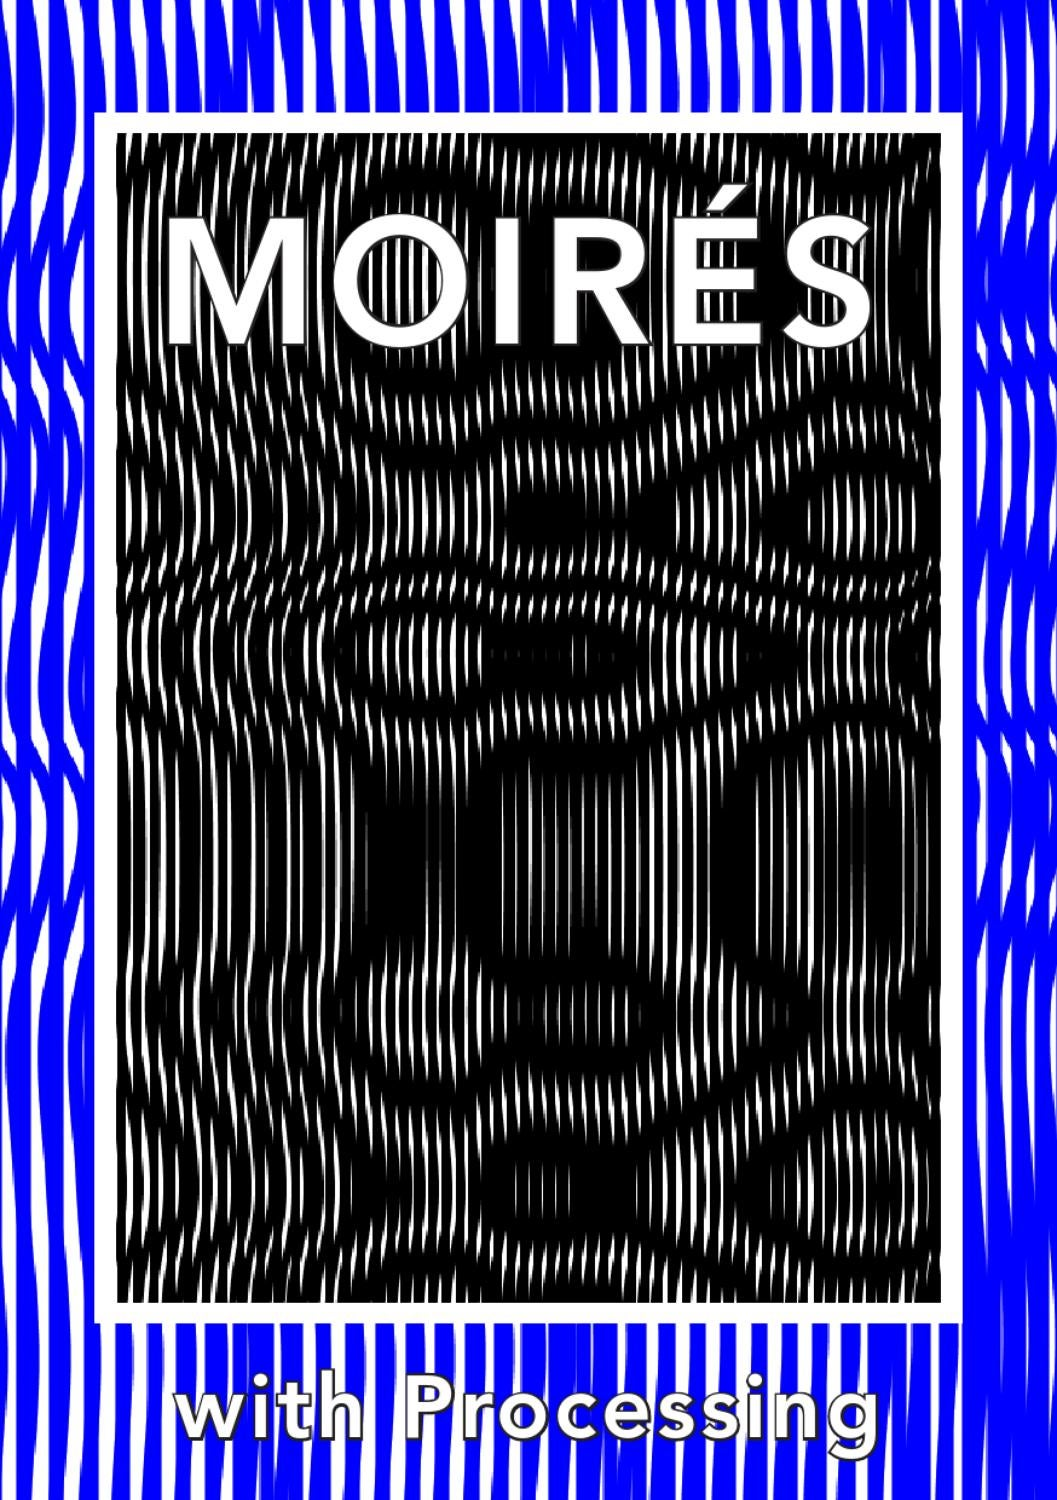 Moirés with Processing by Armin Unruh - issuu